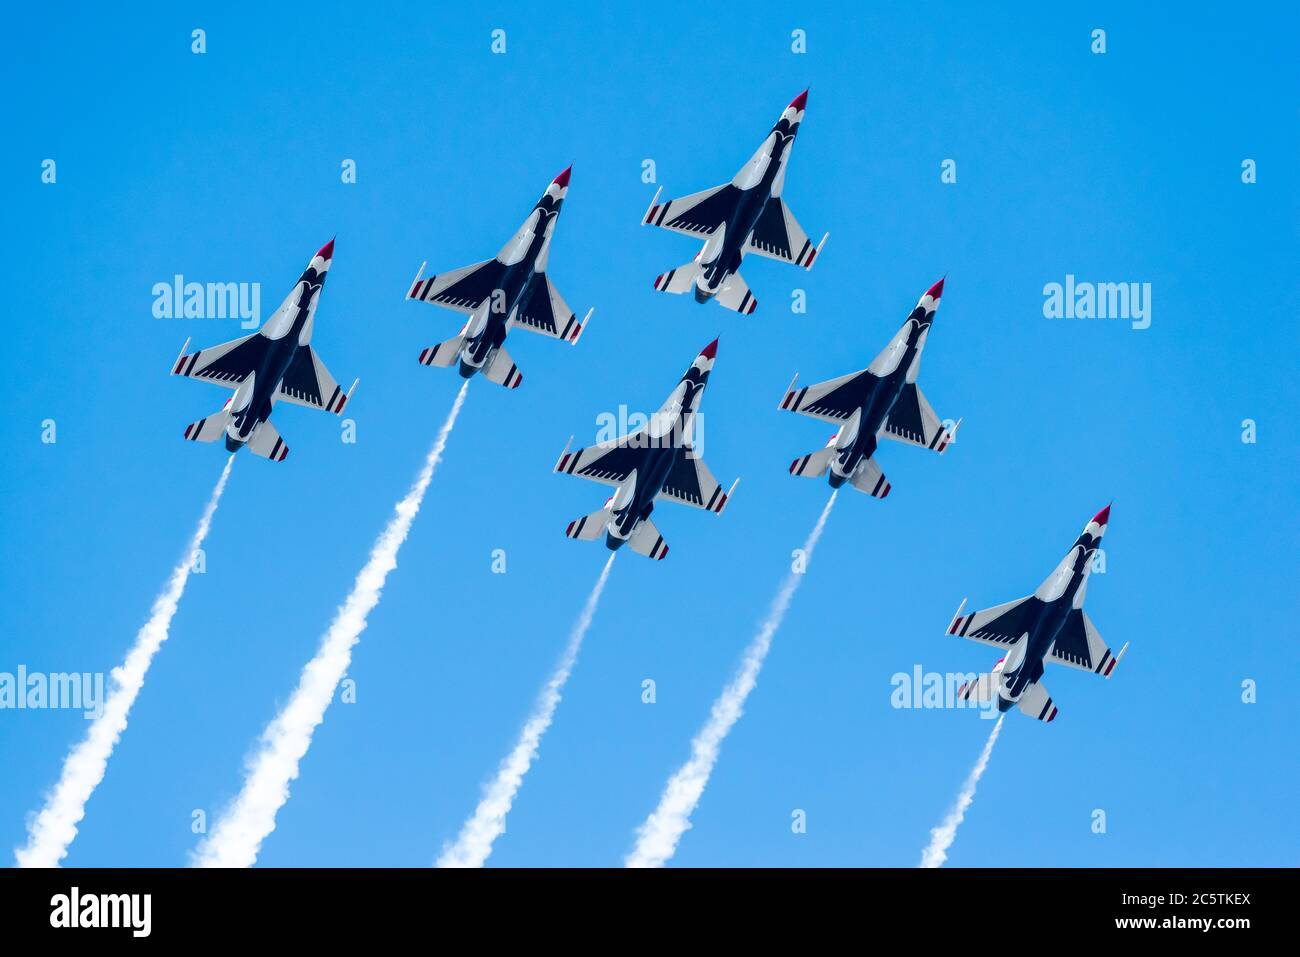 Boston, Massachusetts. 4th July, 2020. USAF Thunderbirds flying at the DOD Salute to America 2020 flyover. Stock Photo